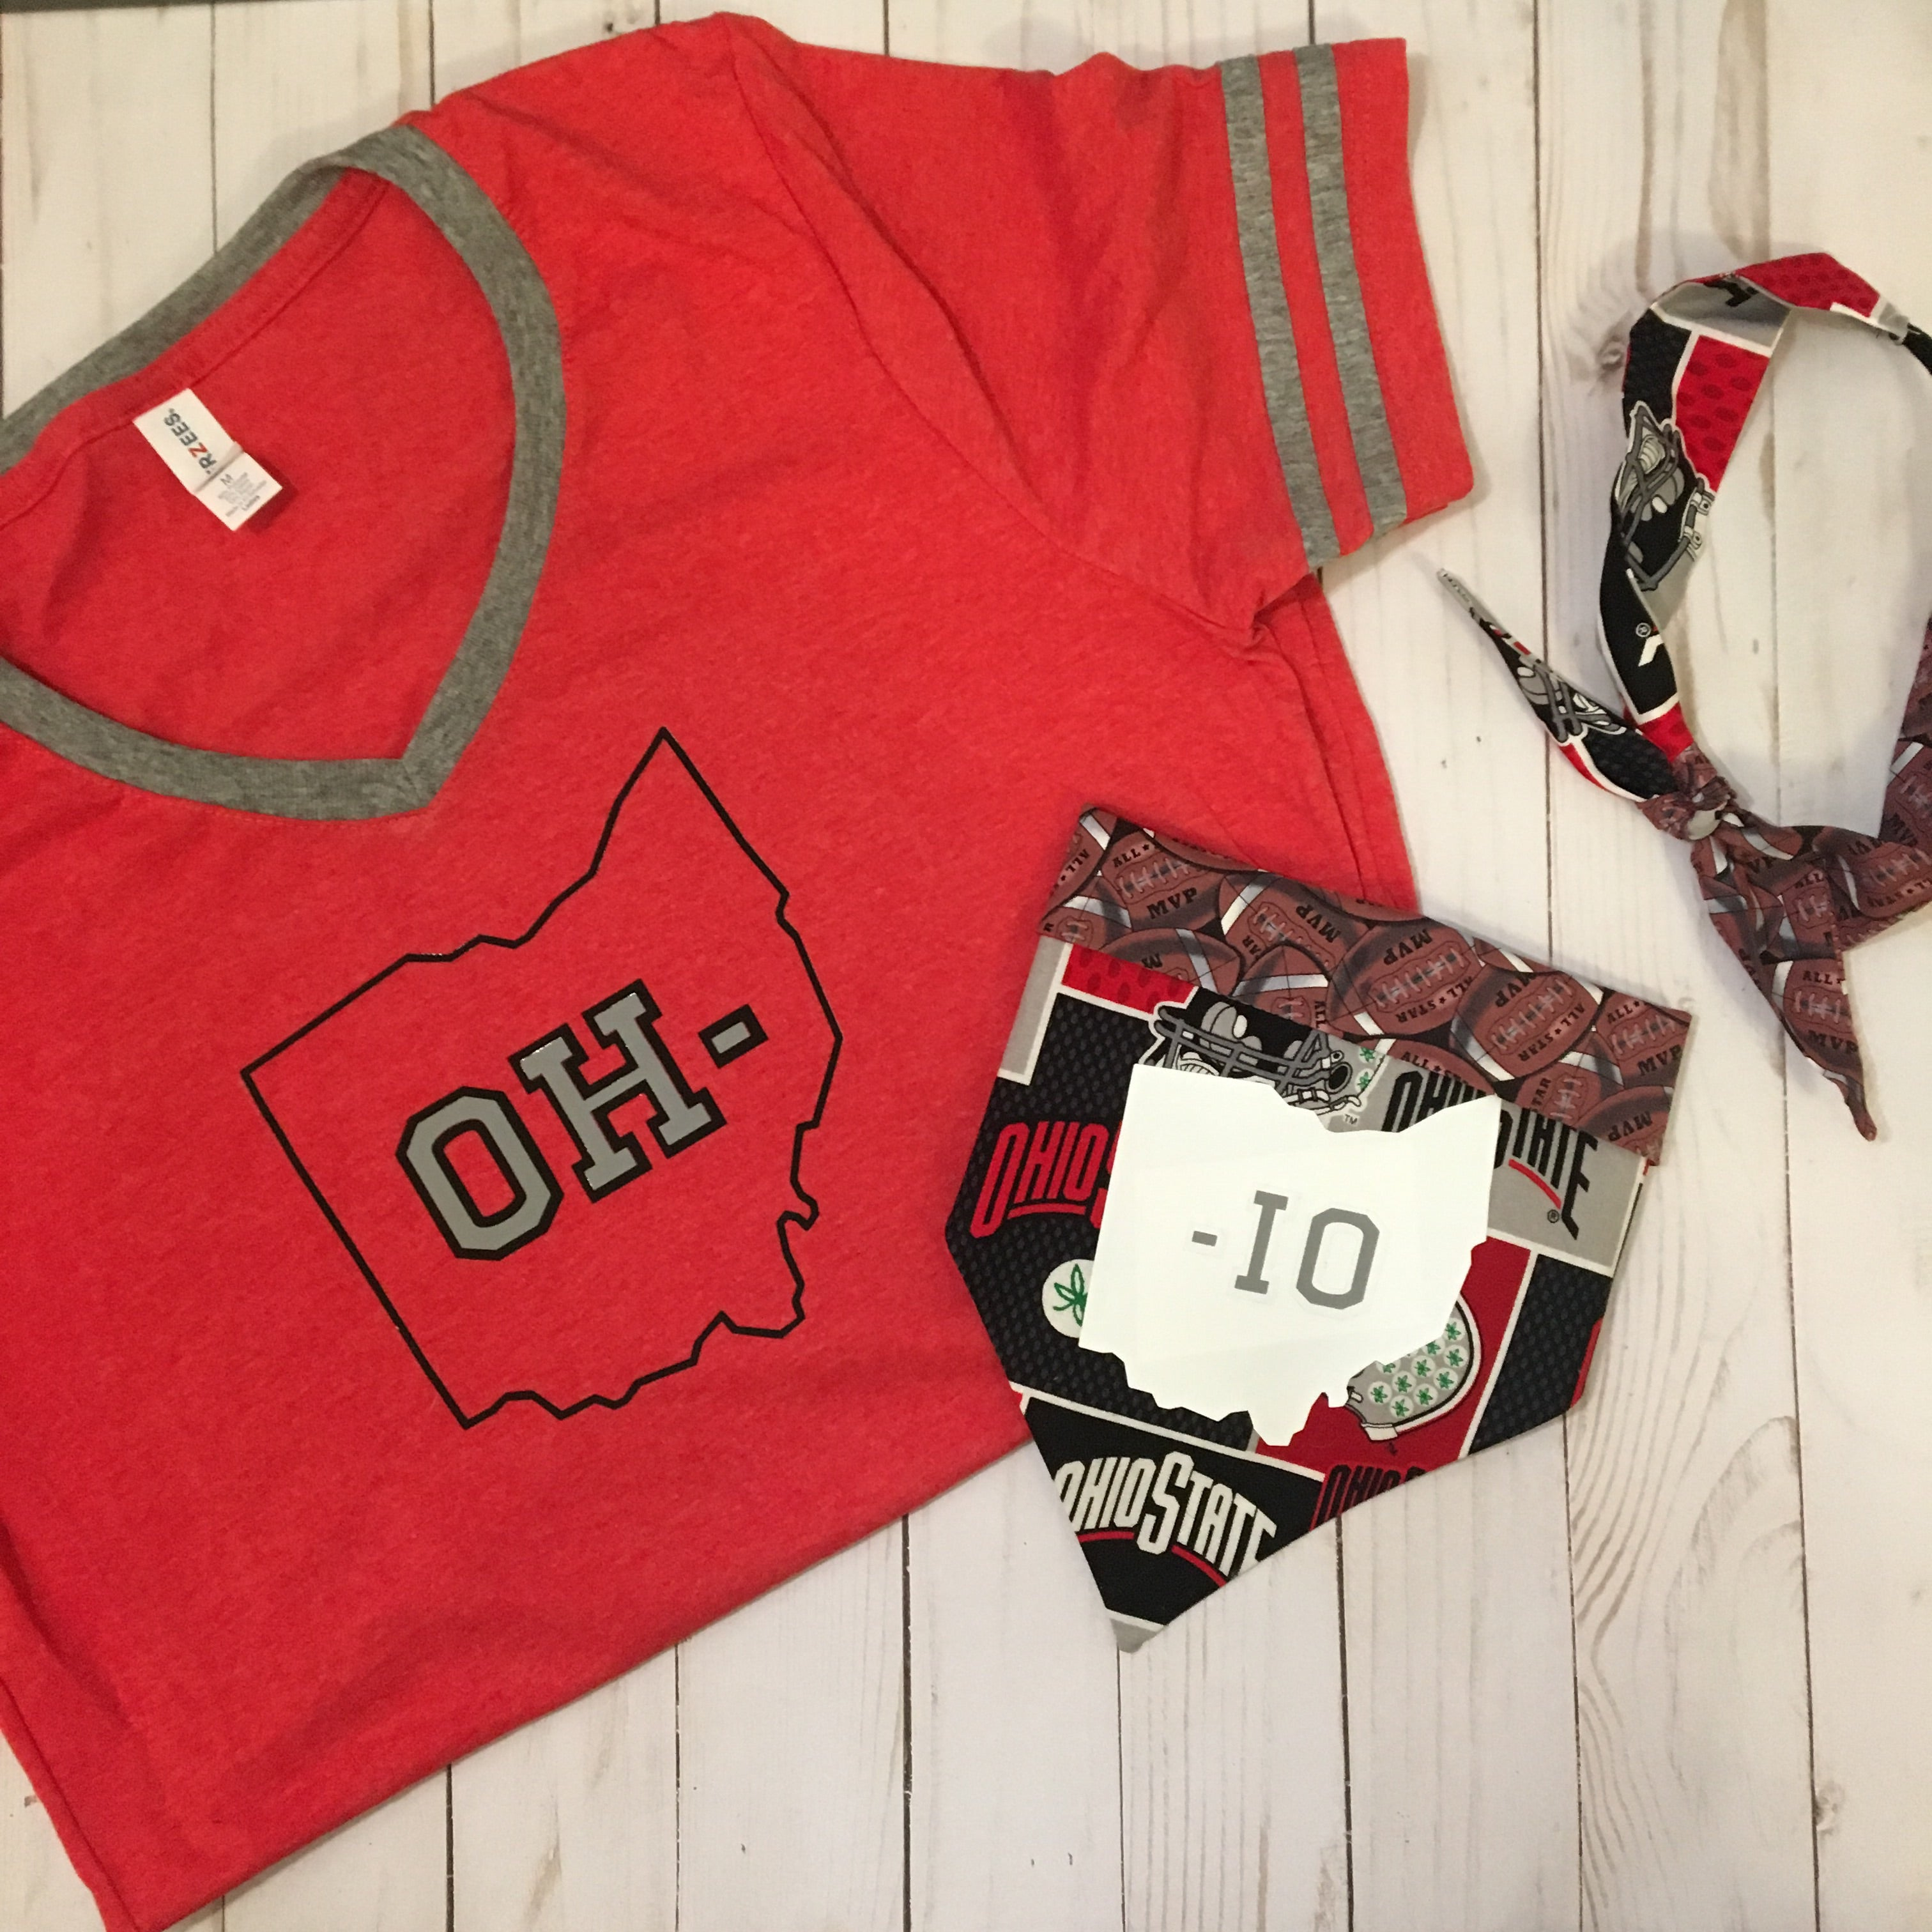 OH- red unisex tee